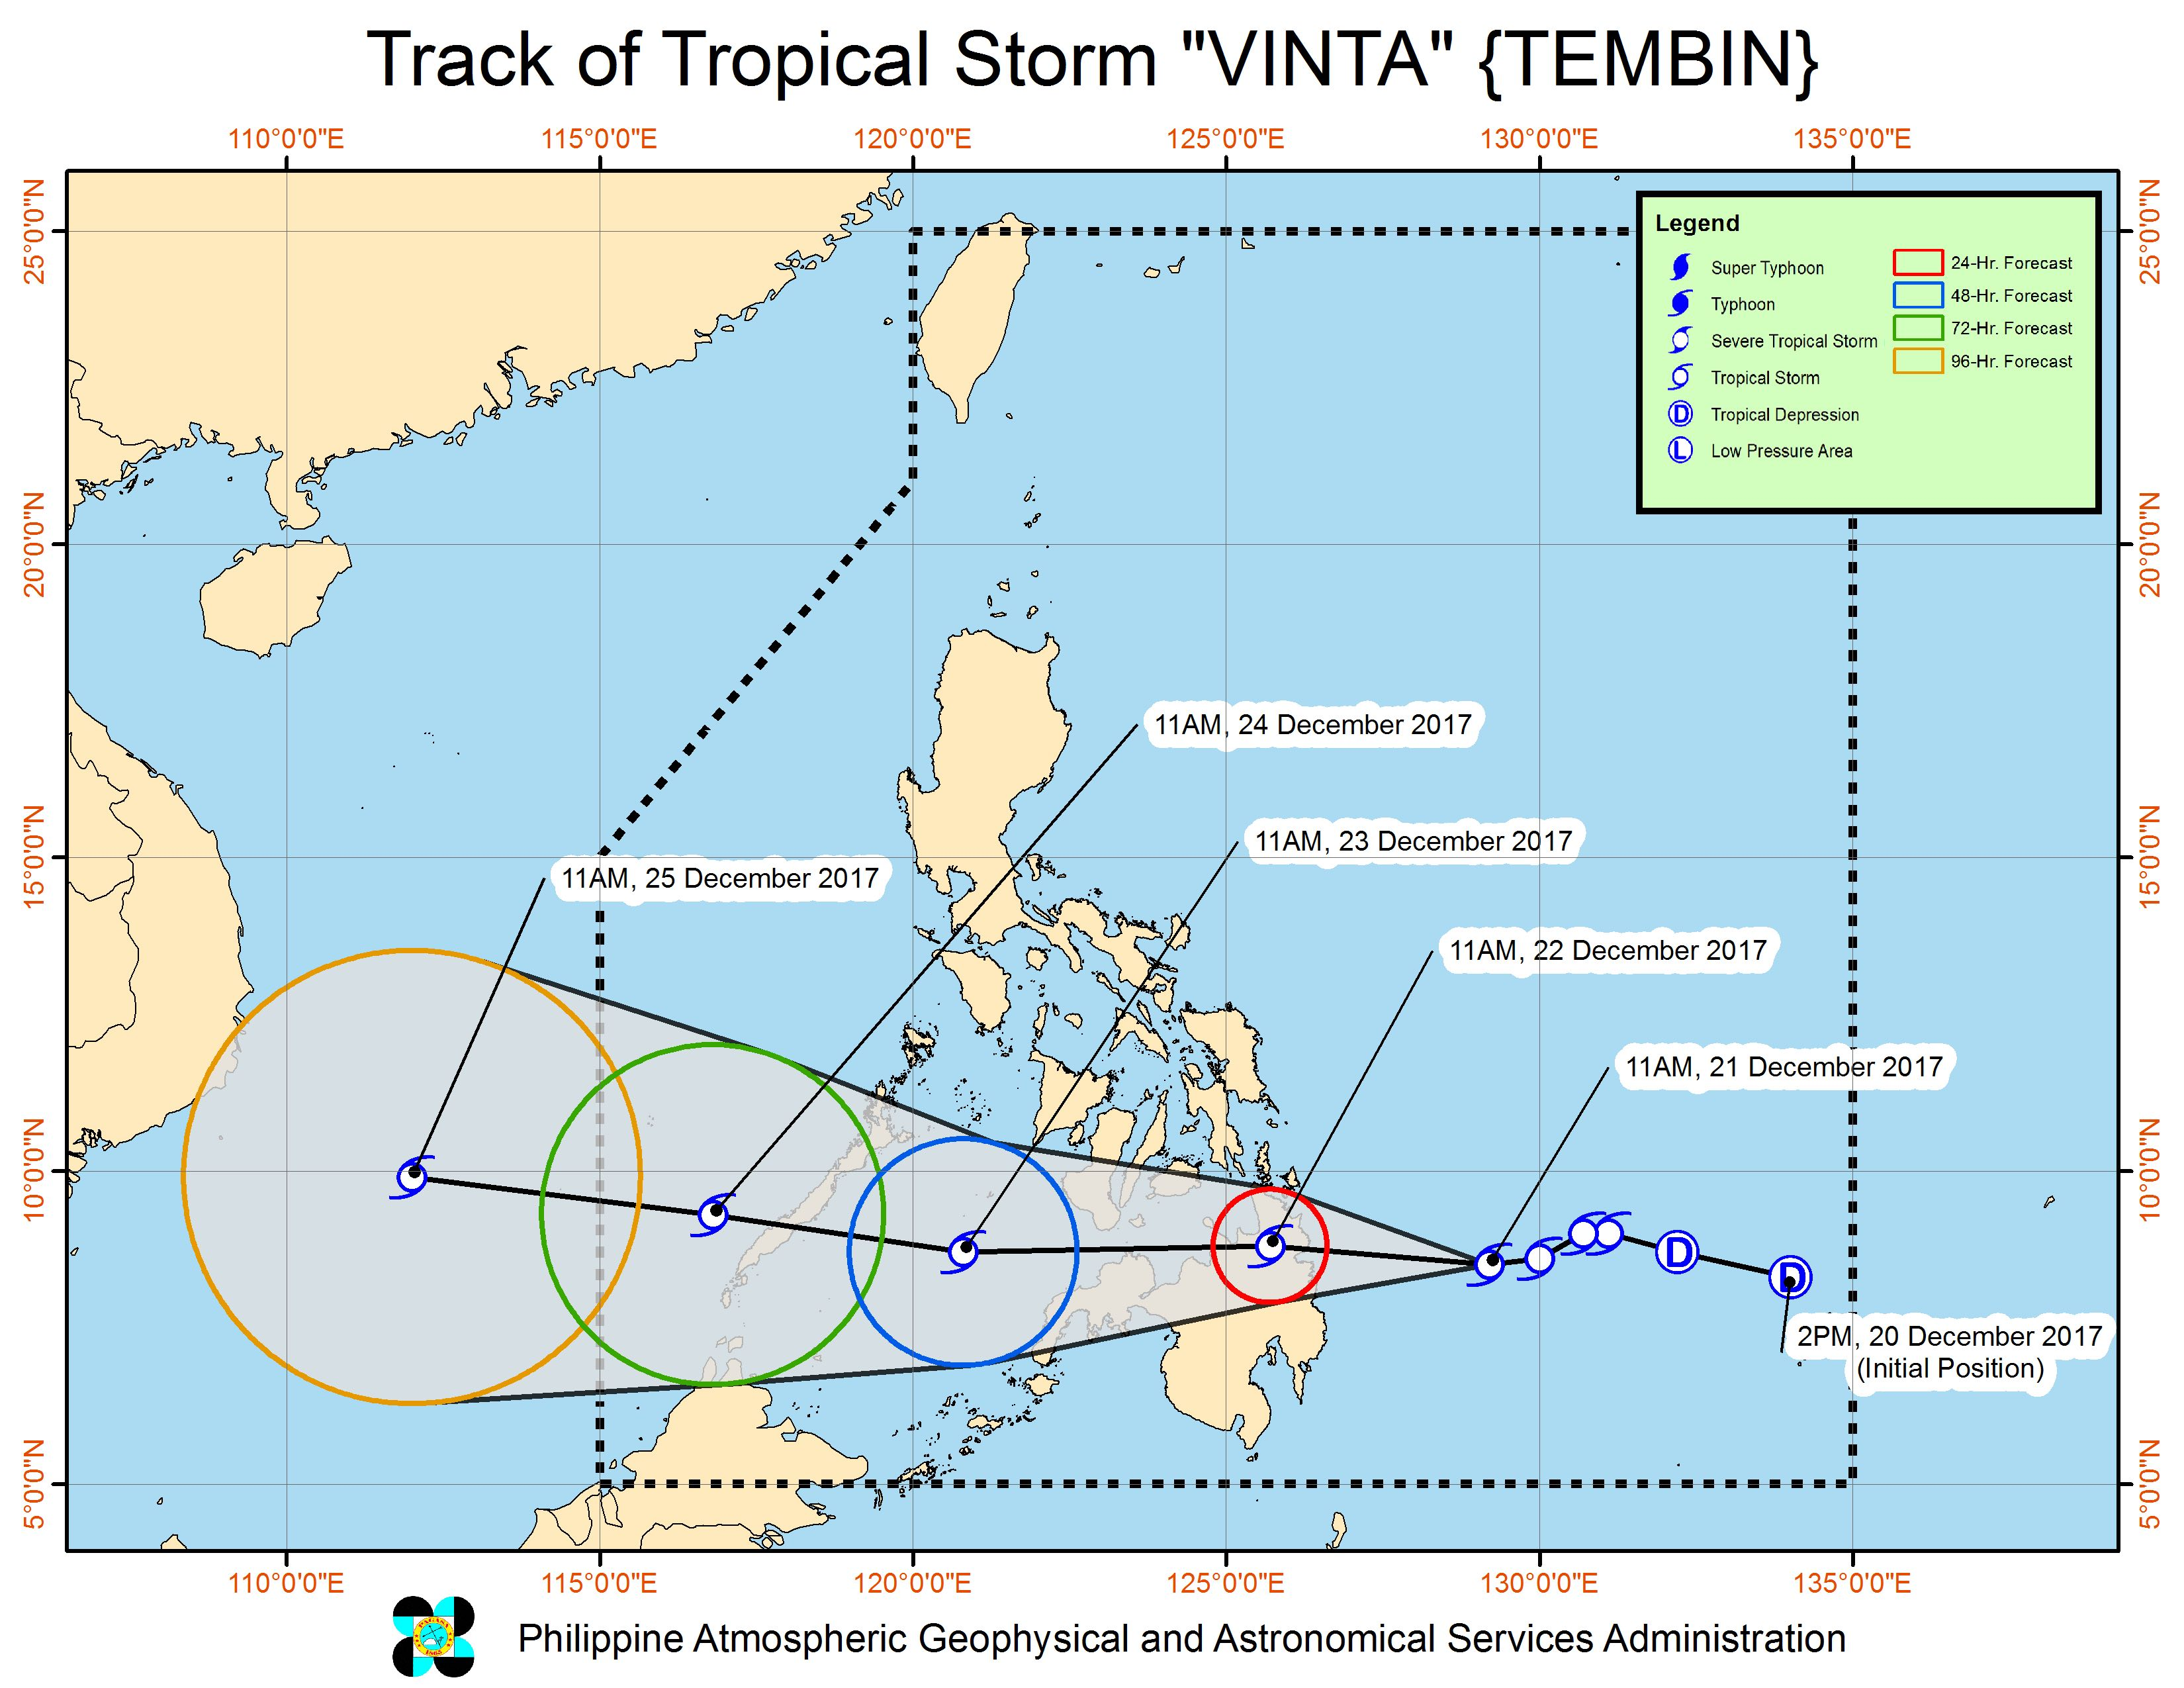 Forecast track of Tropical Storm Vinta as of December 21, 2 pm. Image courtesy of PAGASA